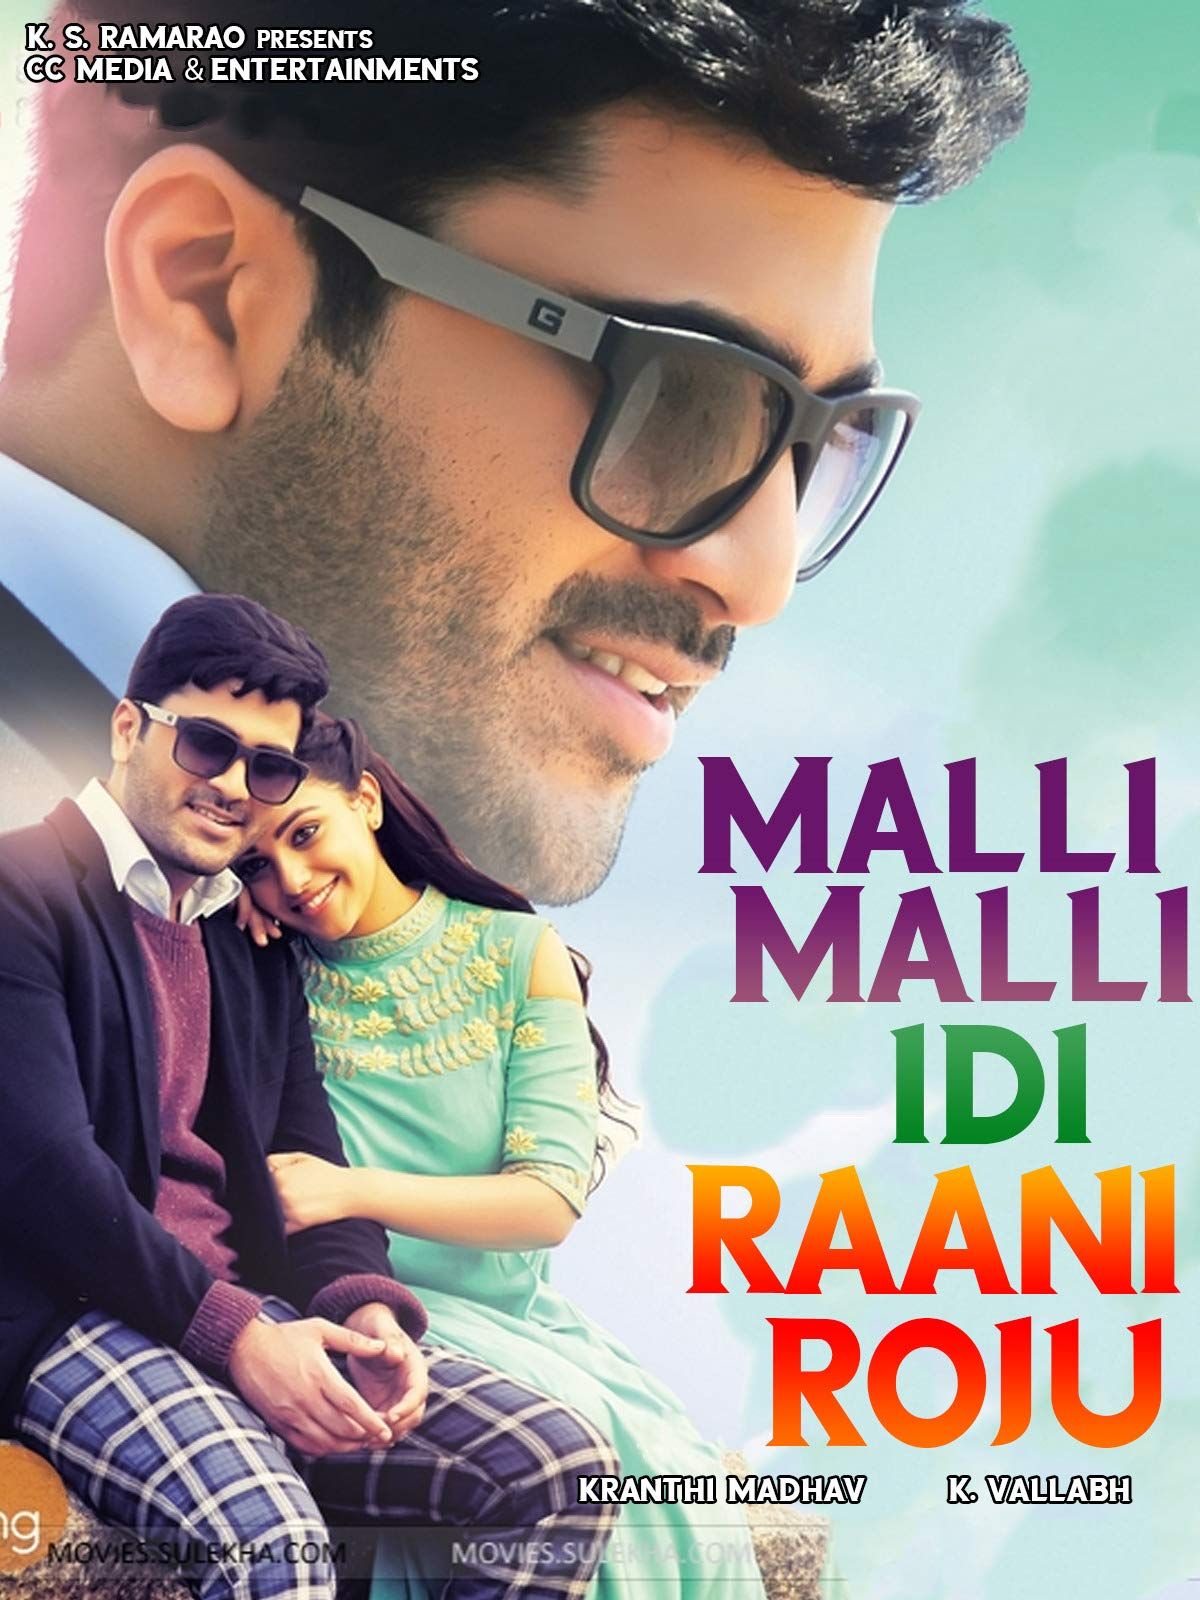 Malli Malli Idi Rani Roju (Real Diljala) 2020 Hindi Dual Audio 650MB UNCUT HDRip 720p HEVC x265 ESubs Free Download